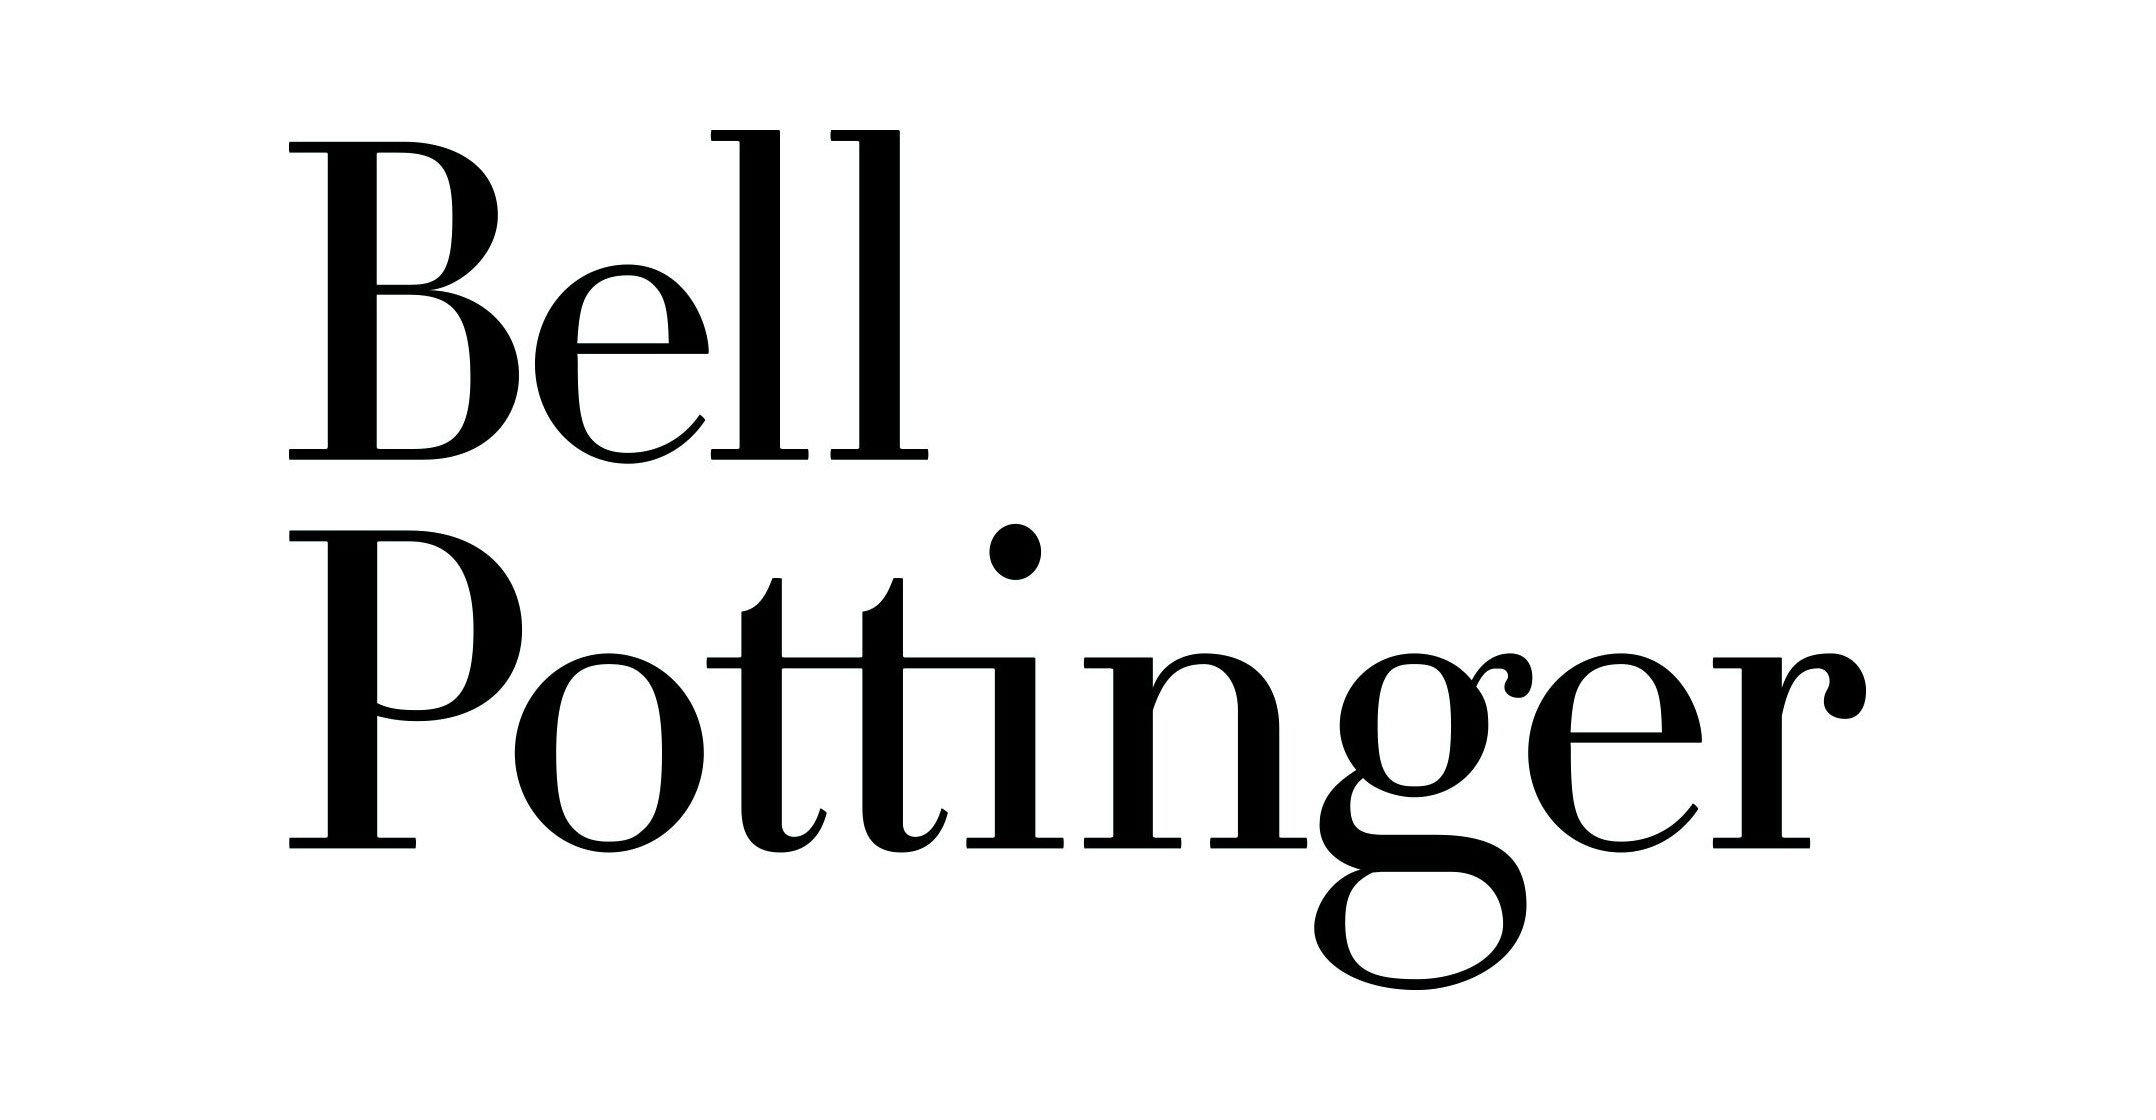 Bell Pottinger loses clients and staff in wake of South Africa scandal